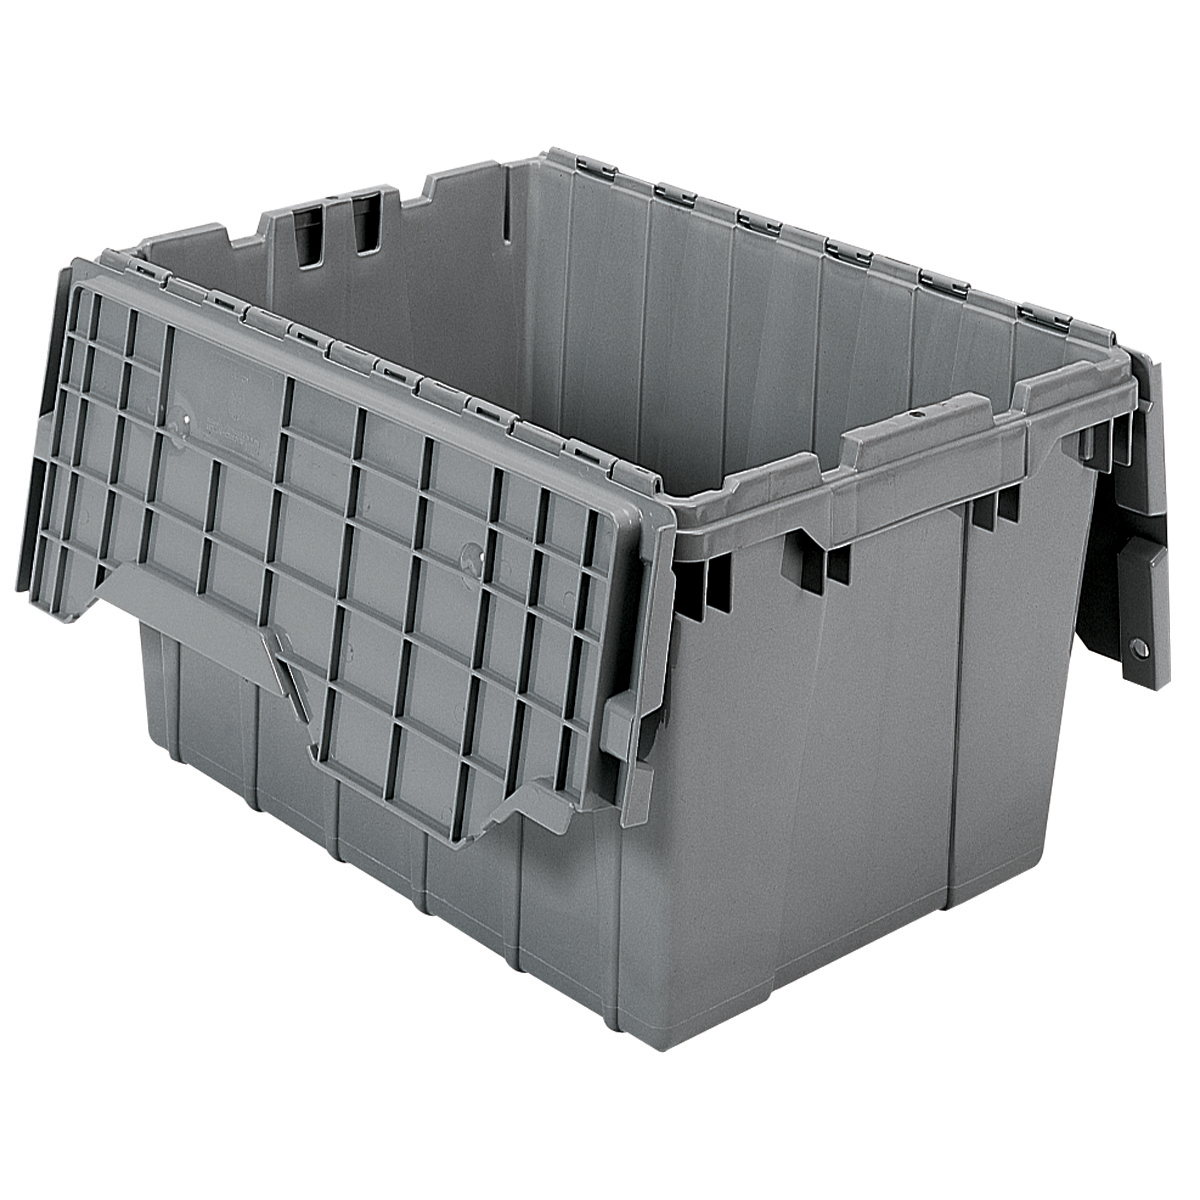 Attached Lid Container 12 gal, 21-1/2 x 15 x 12-1/2, Gray (39120).  This item sold in carton quantities of 6.